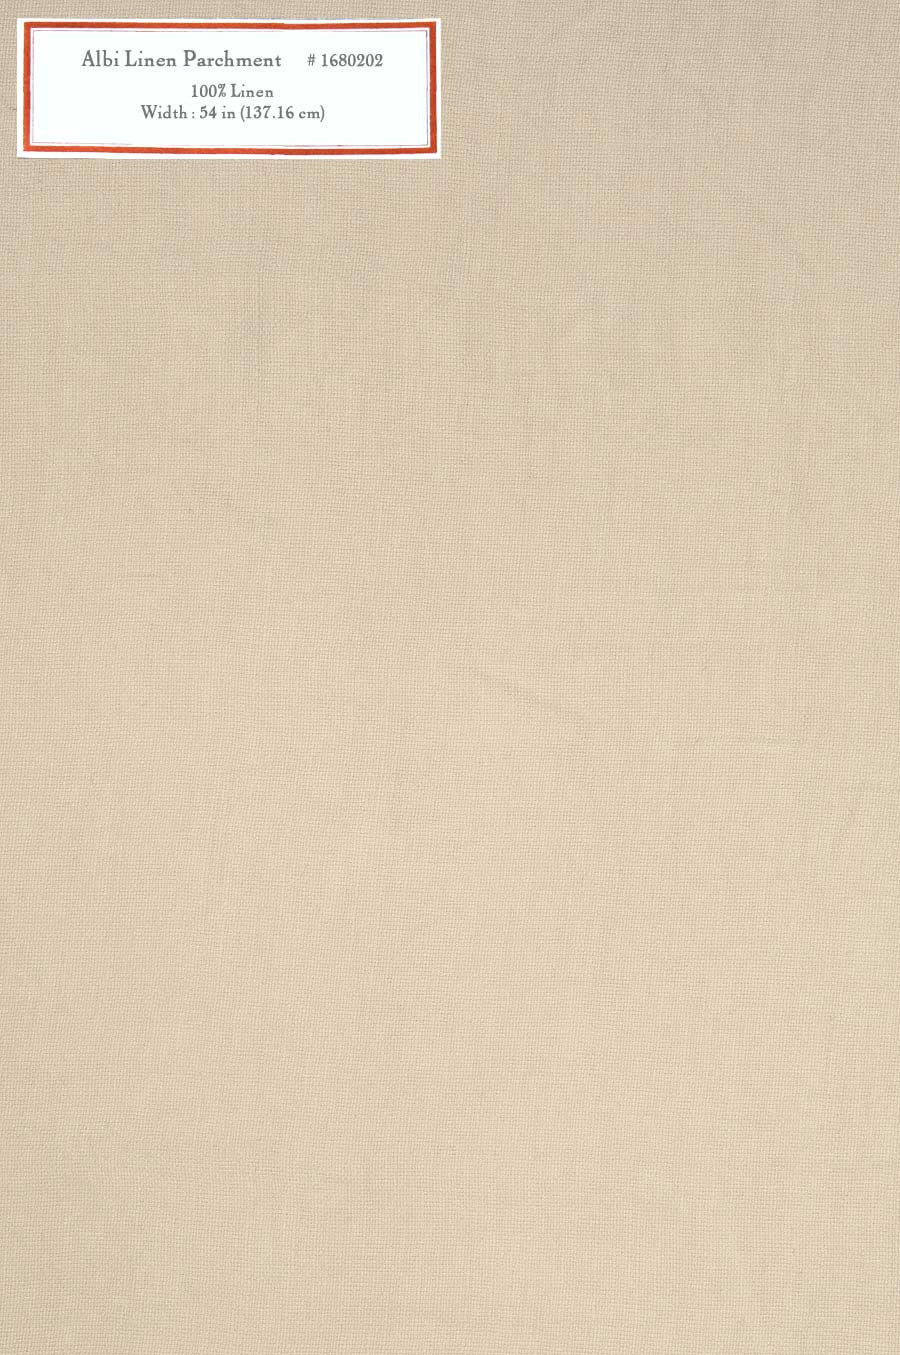 Home Decorative Fabric - Albi Linen Parchment